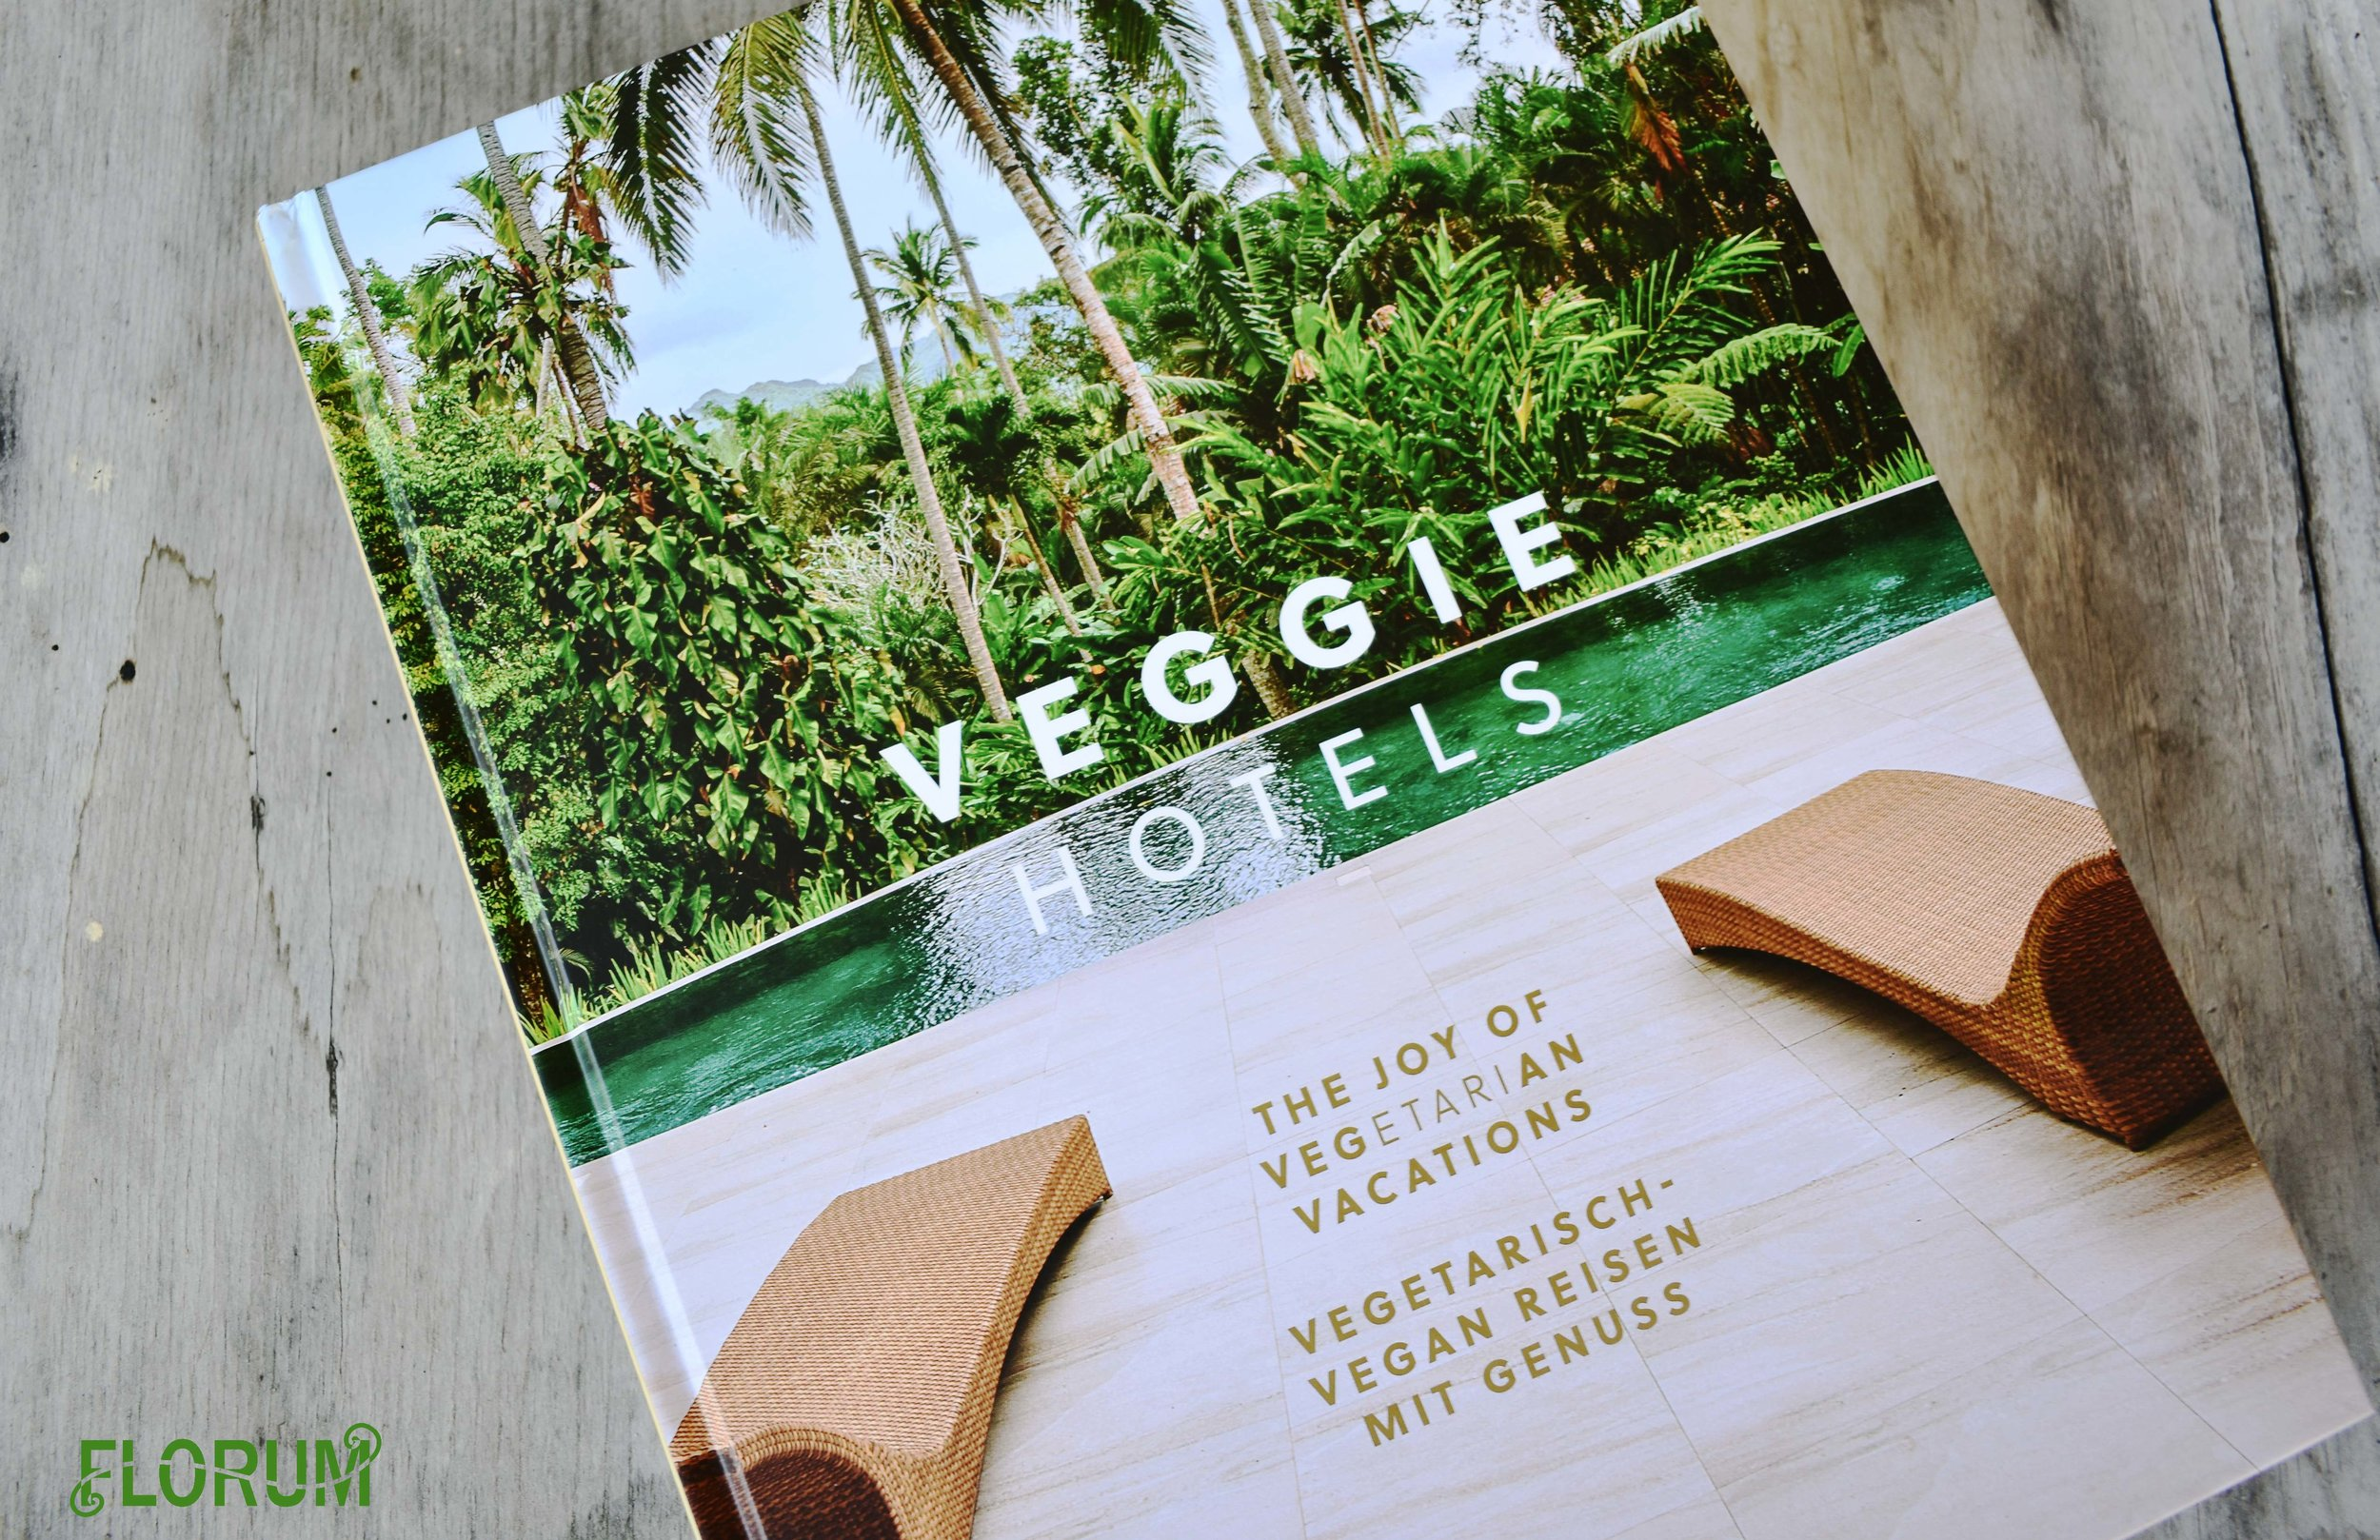 During my tour of the Park Lane Guest House, I saw this book 'Veggie Hotels' and was immediately drawn to it.  Not only has  Park Lane Guest House been featured in this book, but this little vegetarian bed and breakfast  was one of the first in the United States to be featured on their  website .